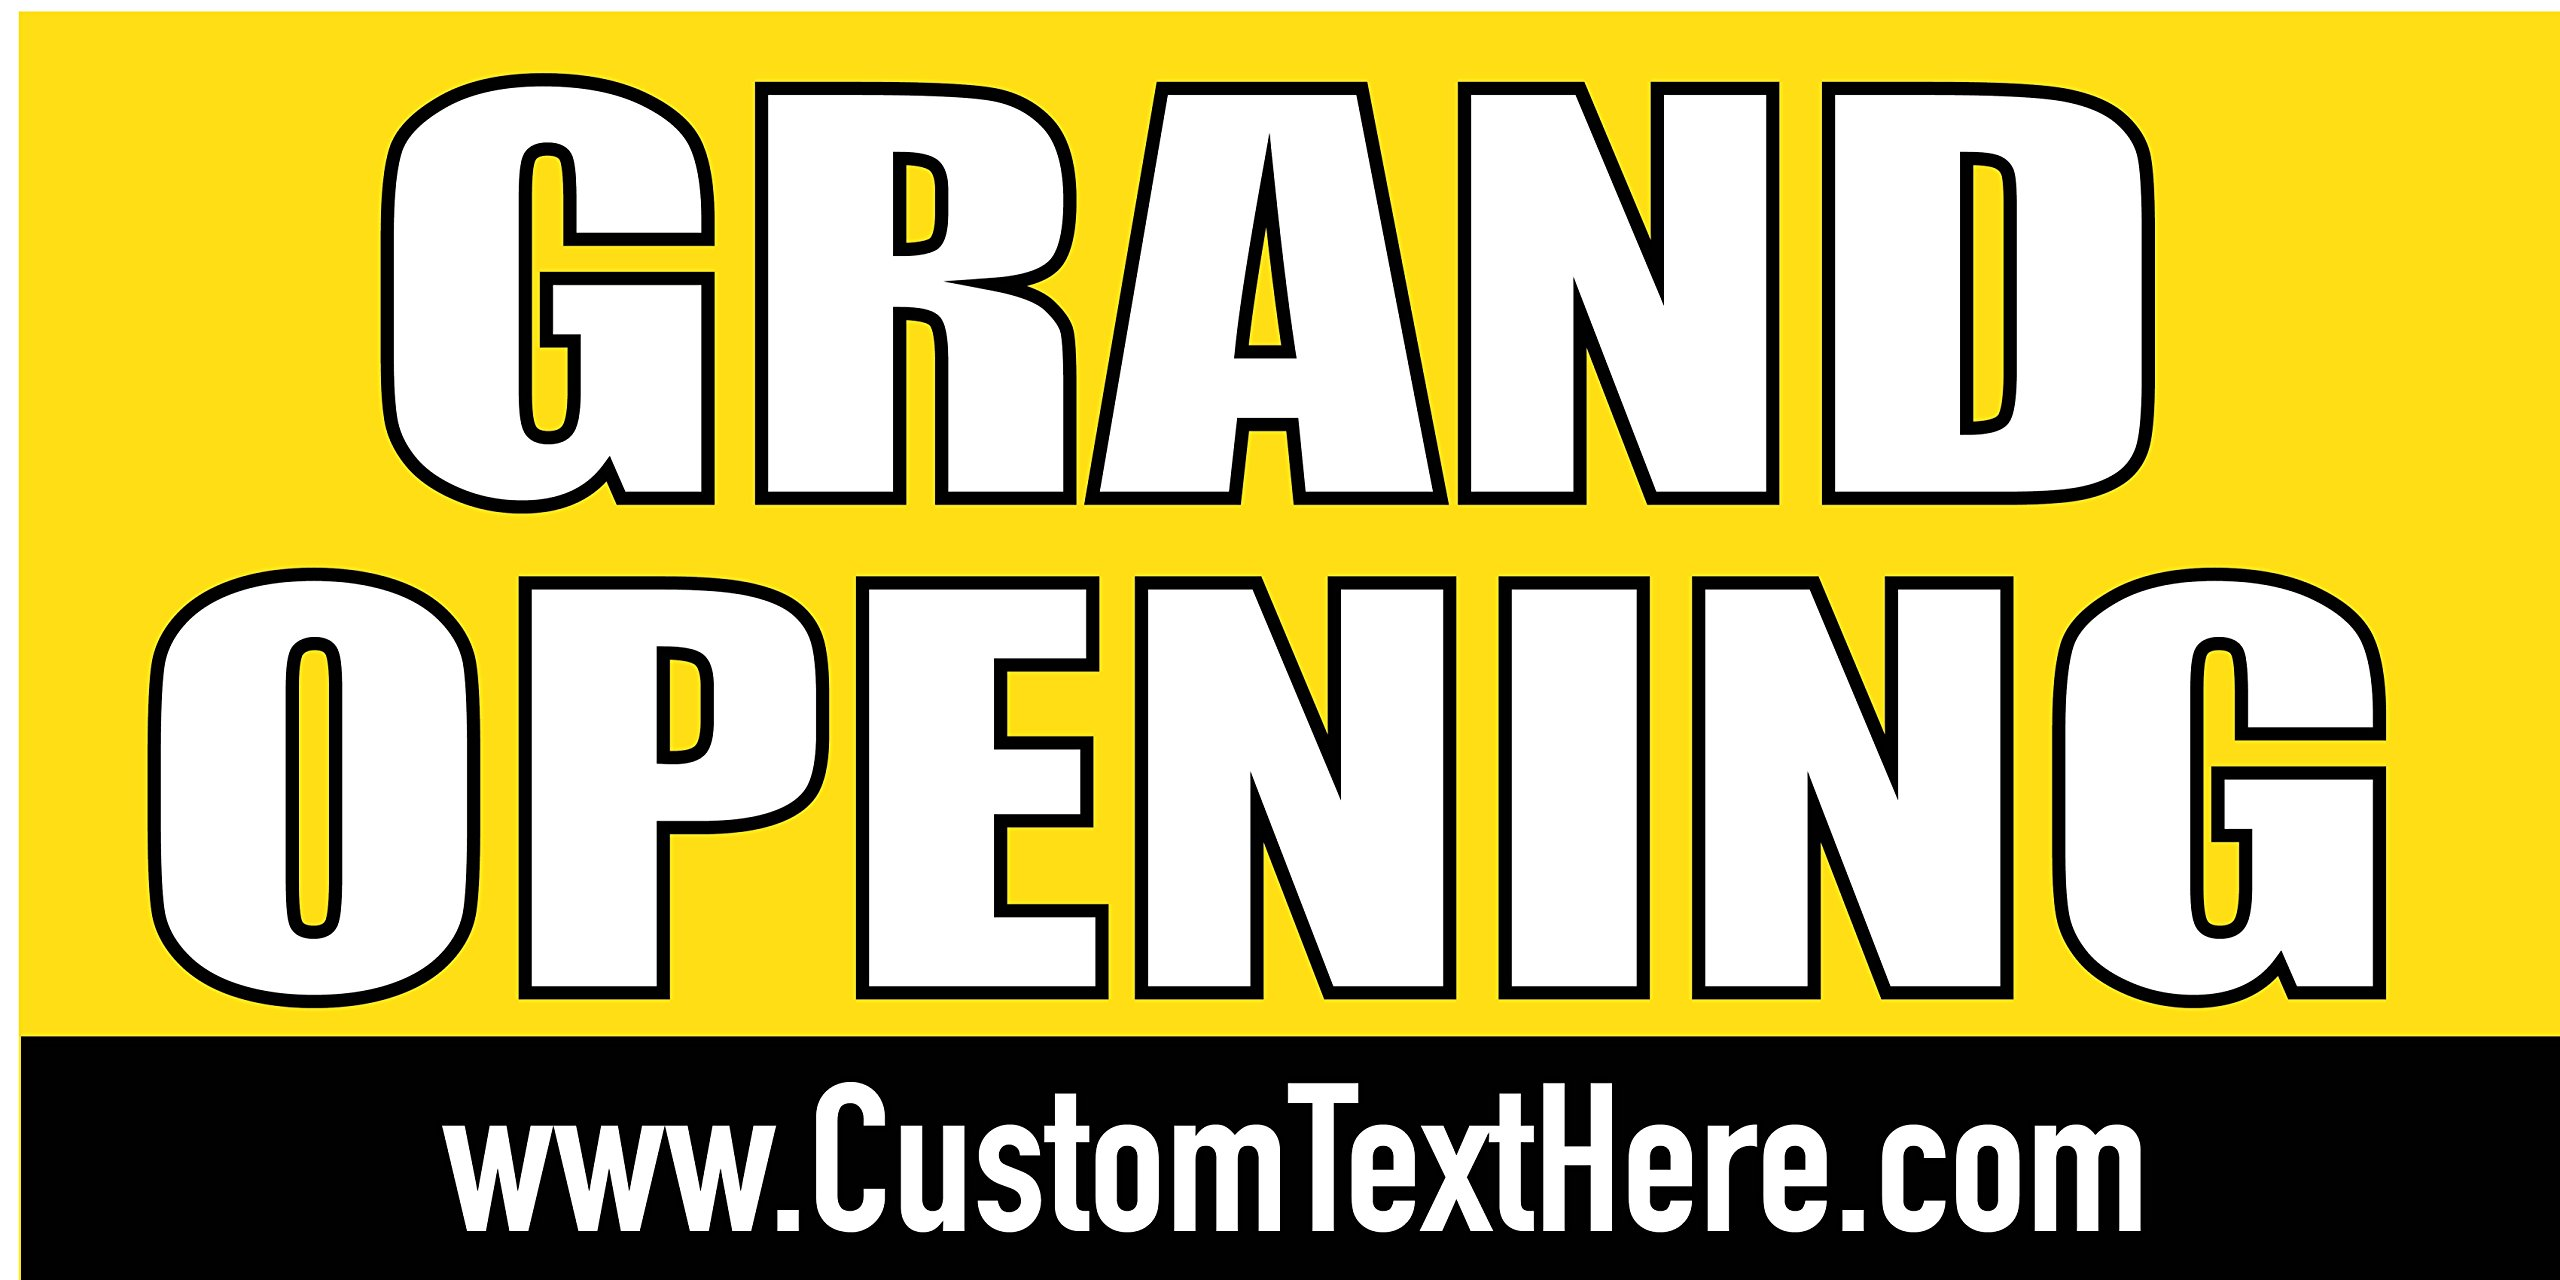 Custom Printed Grand Opening Banner - Yellow (10' x 5') by Reliable Banner Sign Supply & Printing